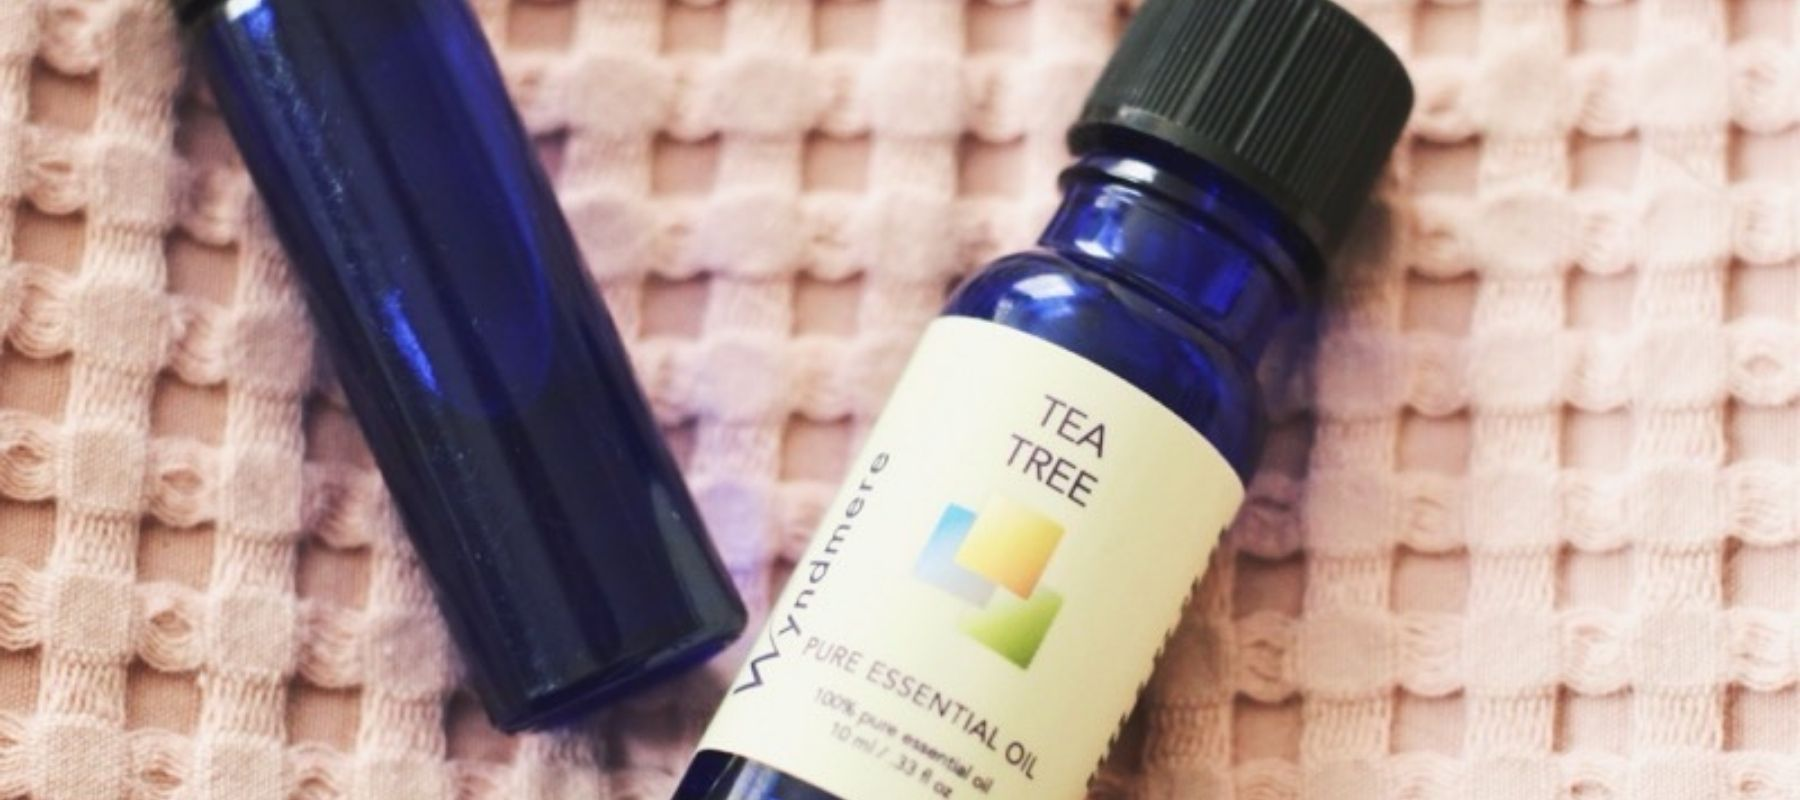 Wyndmere Tea Tree the best pure Essential Oils for therapeutic aromatherapy often used for Acne, Athlete's Foot, Candida, Chicken Pox, Cold Sores, Colds Corns, Cuts, Flu, Insect Bites, Itching, Migraine, Oily Skin, Ringworm, Sinusitis, Sores, Spots